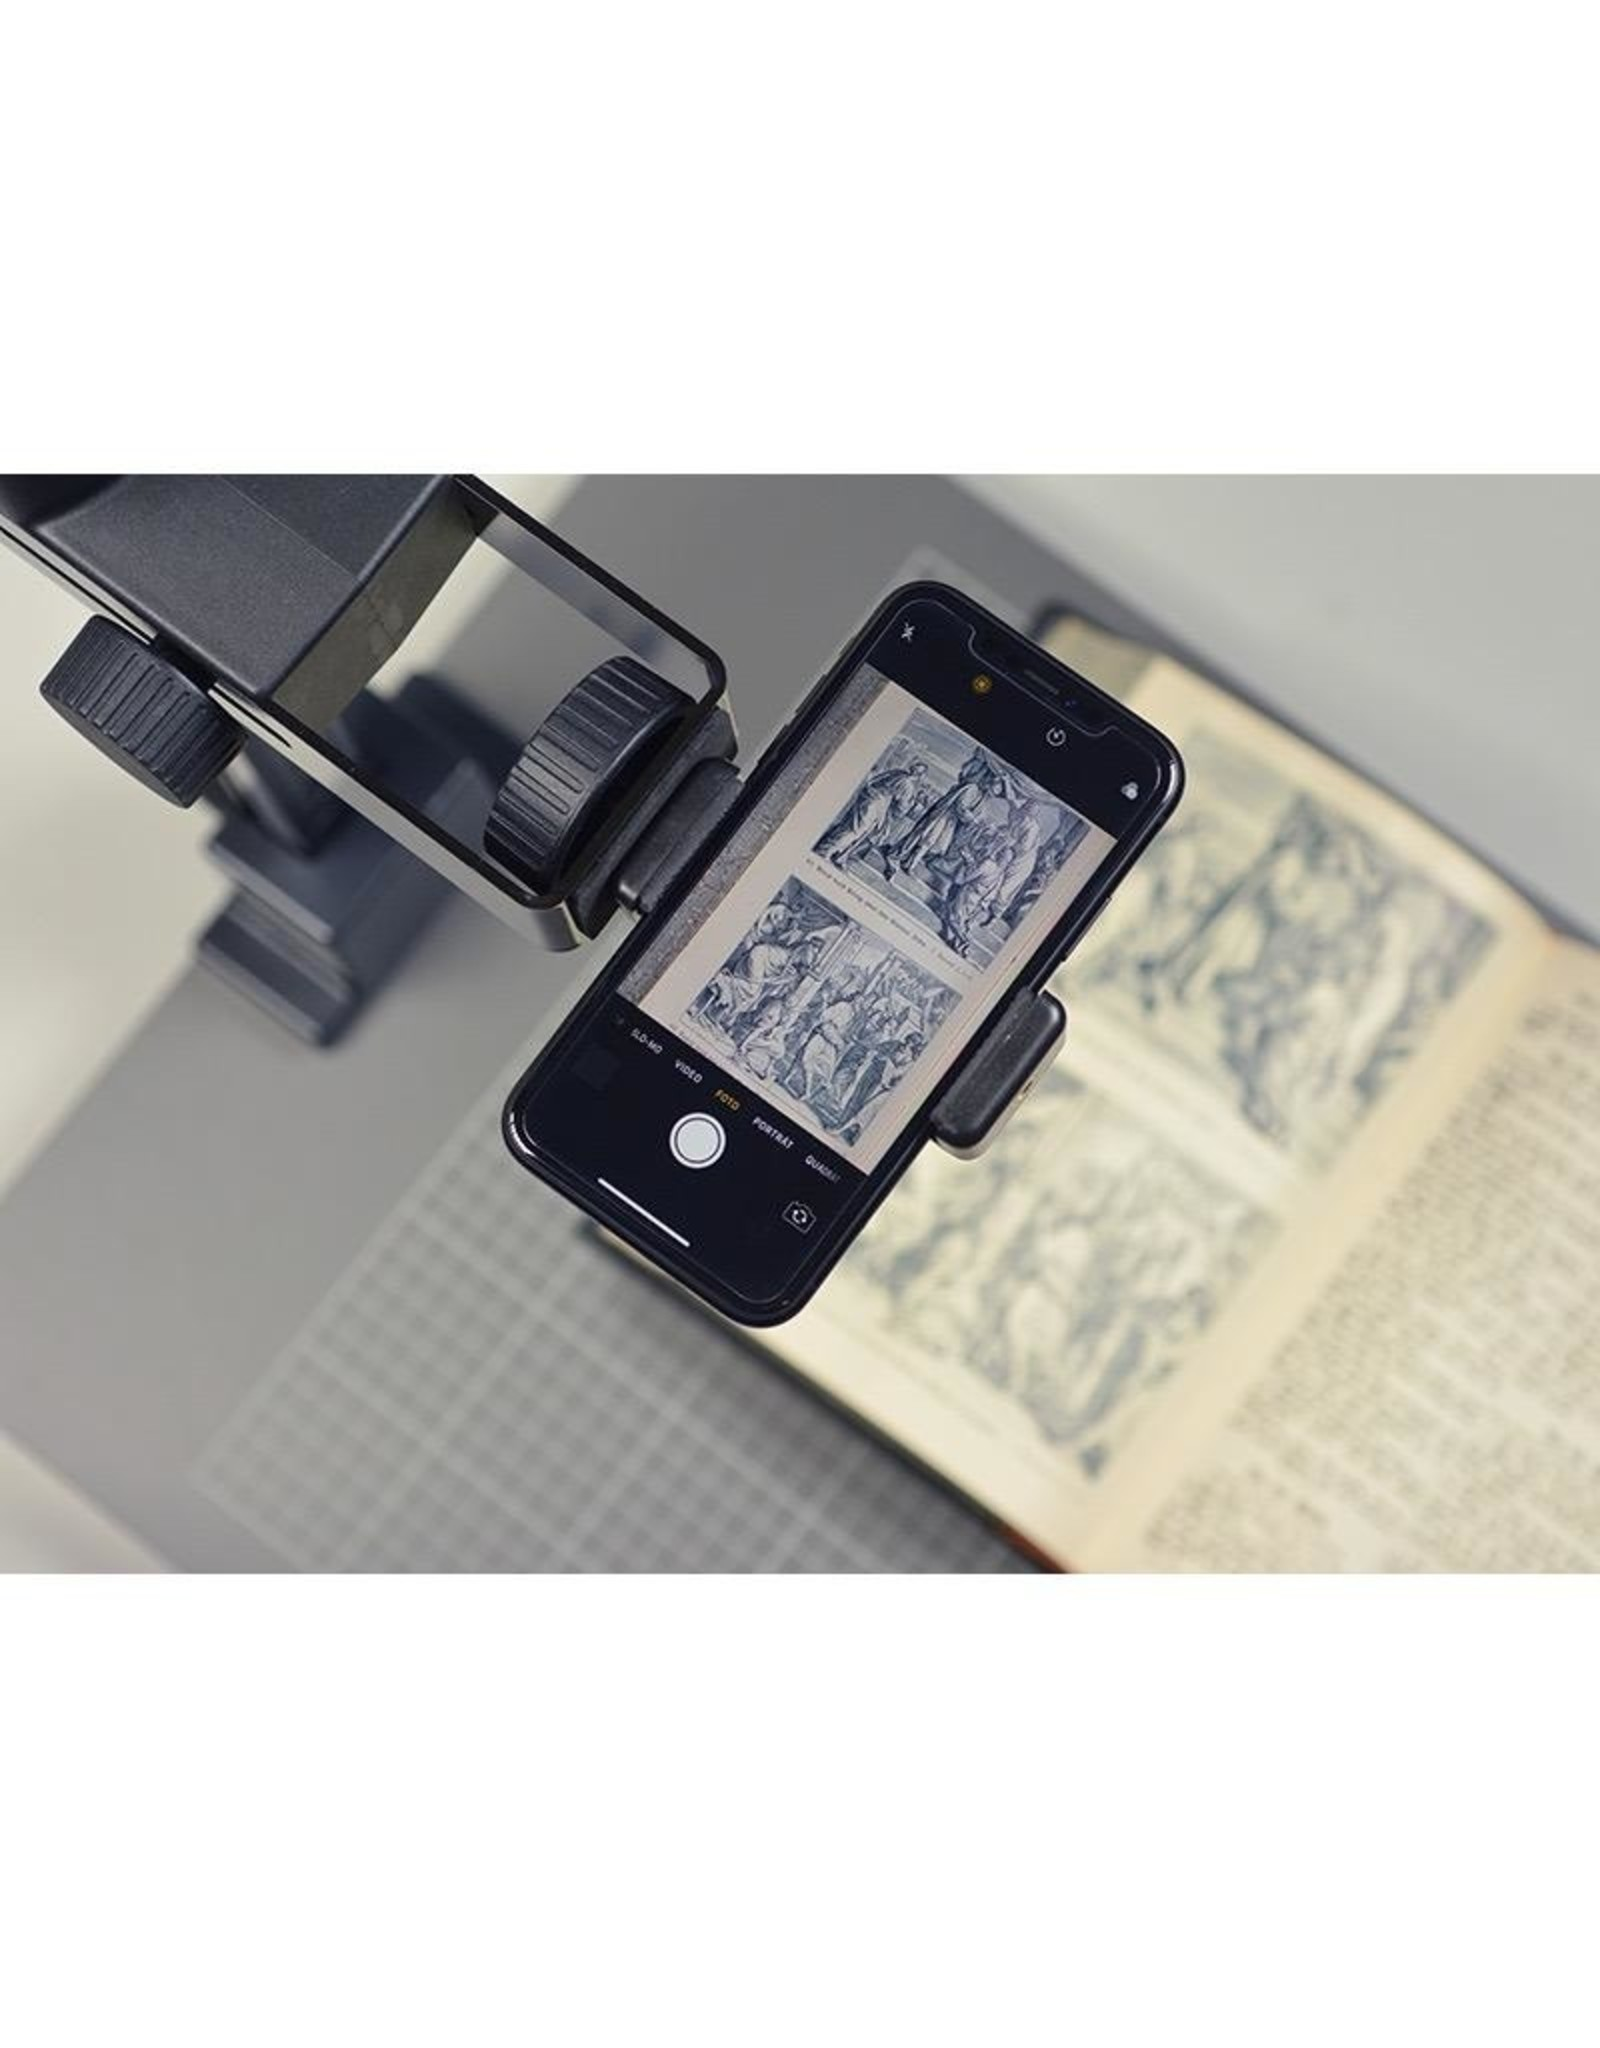 """Kaiser Kaiser Smartphone Holder, Clamp span 56-85 mm (2.2 - 3.5 in.), with two tripod threads 1/4"""""""